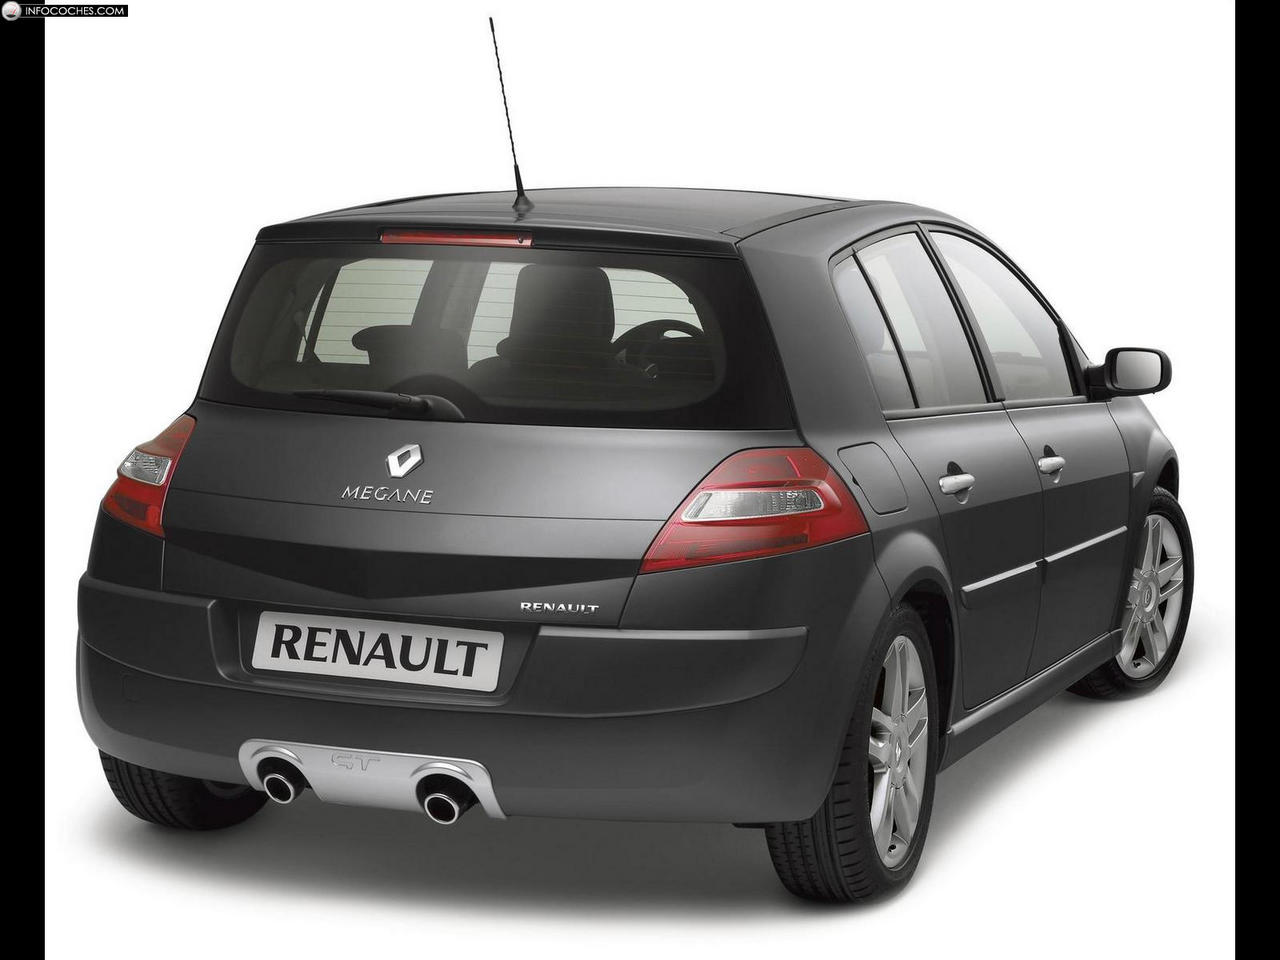 renault megane ii gt photos news reviews specs car listings. Black Bedroom Furniture Sets. Home Design Ideas